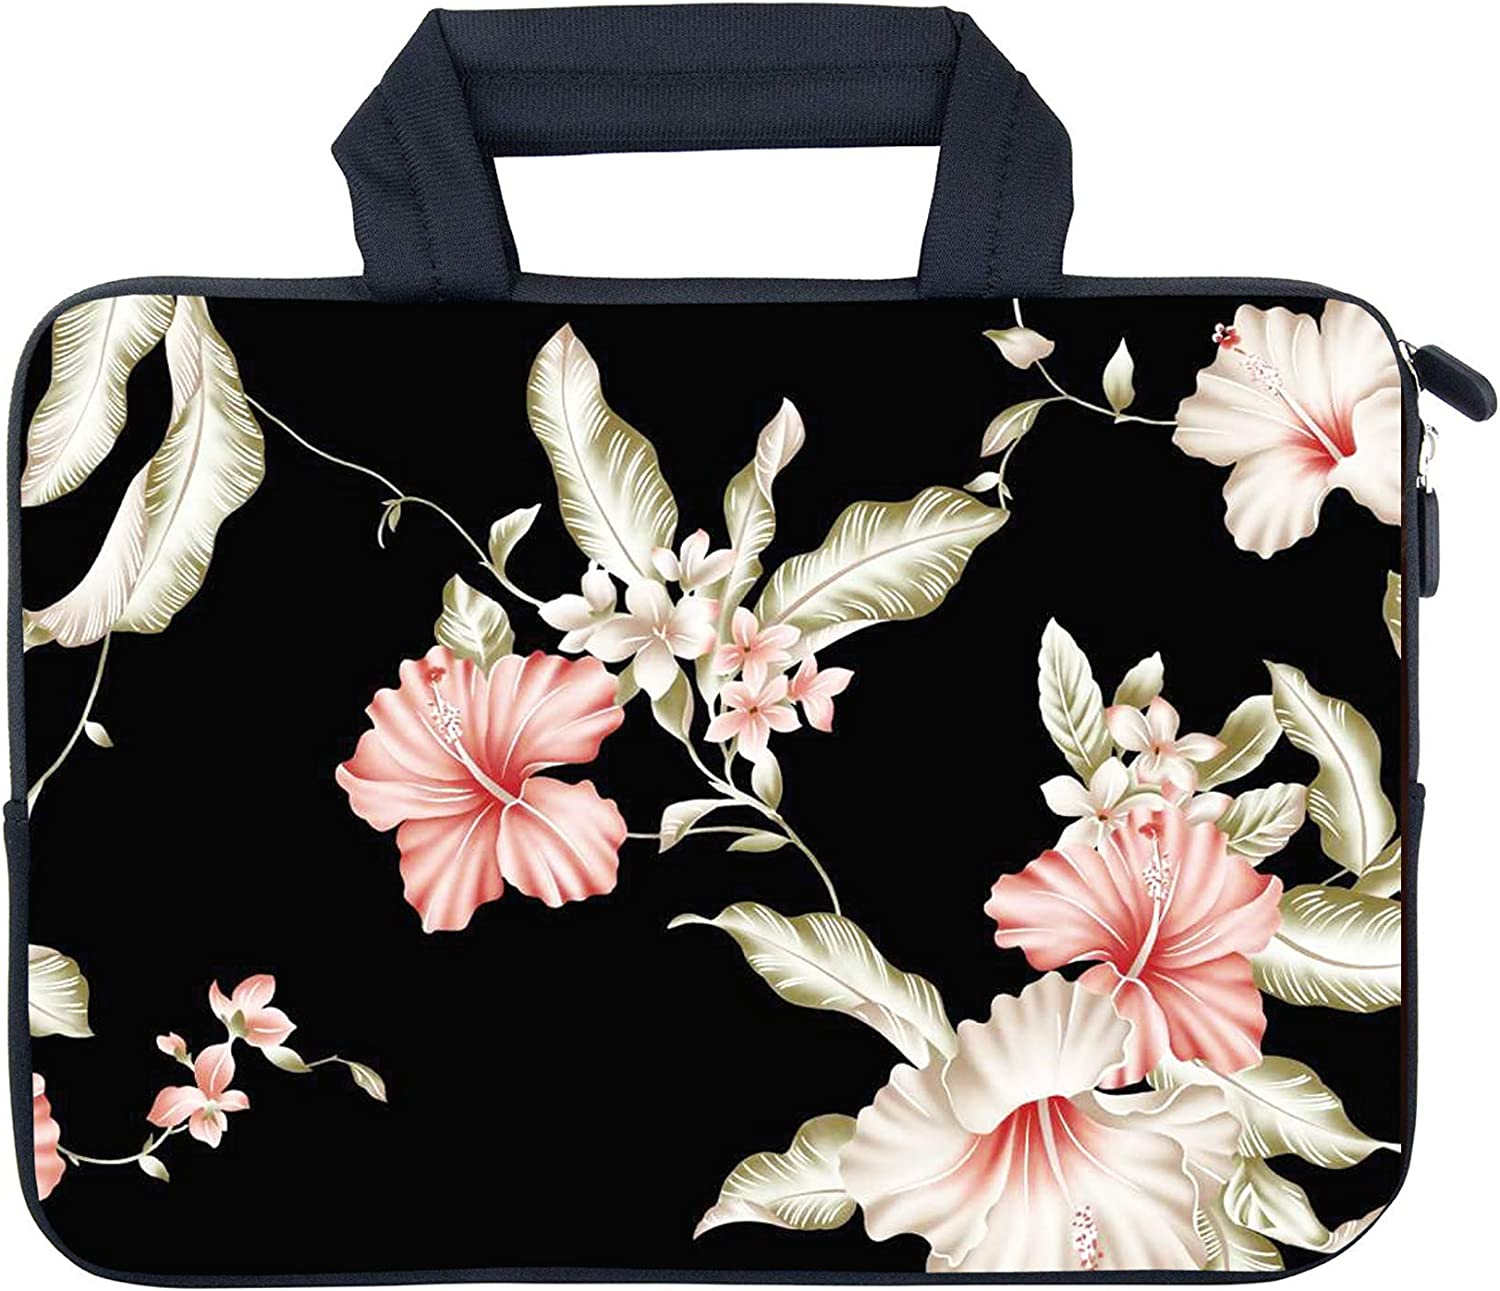 "AMARY 11.6"" 12"" 12.1"" 12.5 inch Laptop Handle Bag Neoprene Notebook Carrying Pouch Chromebook Sleeve Ultrabook Case Tablet Cover Fit Apple MacBook Air HP DELL Lenovo Asus Samsung (Flowers-1)"